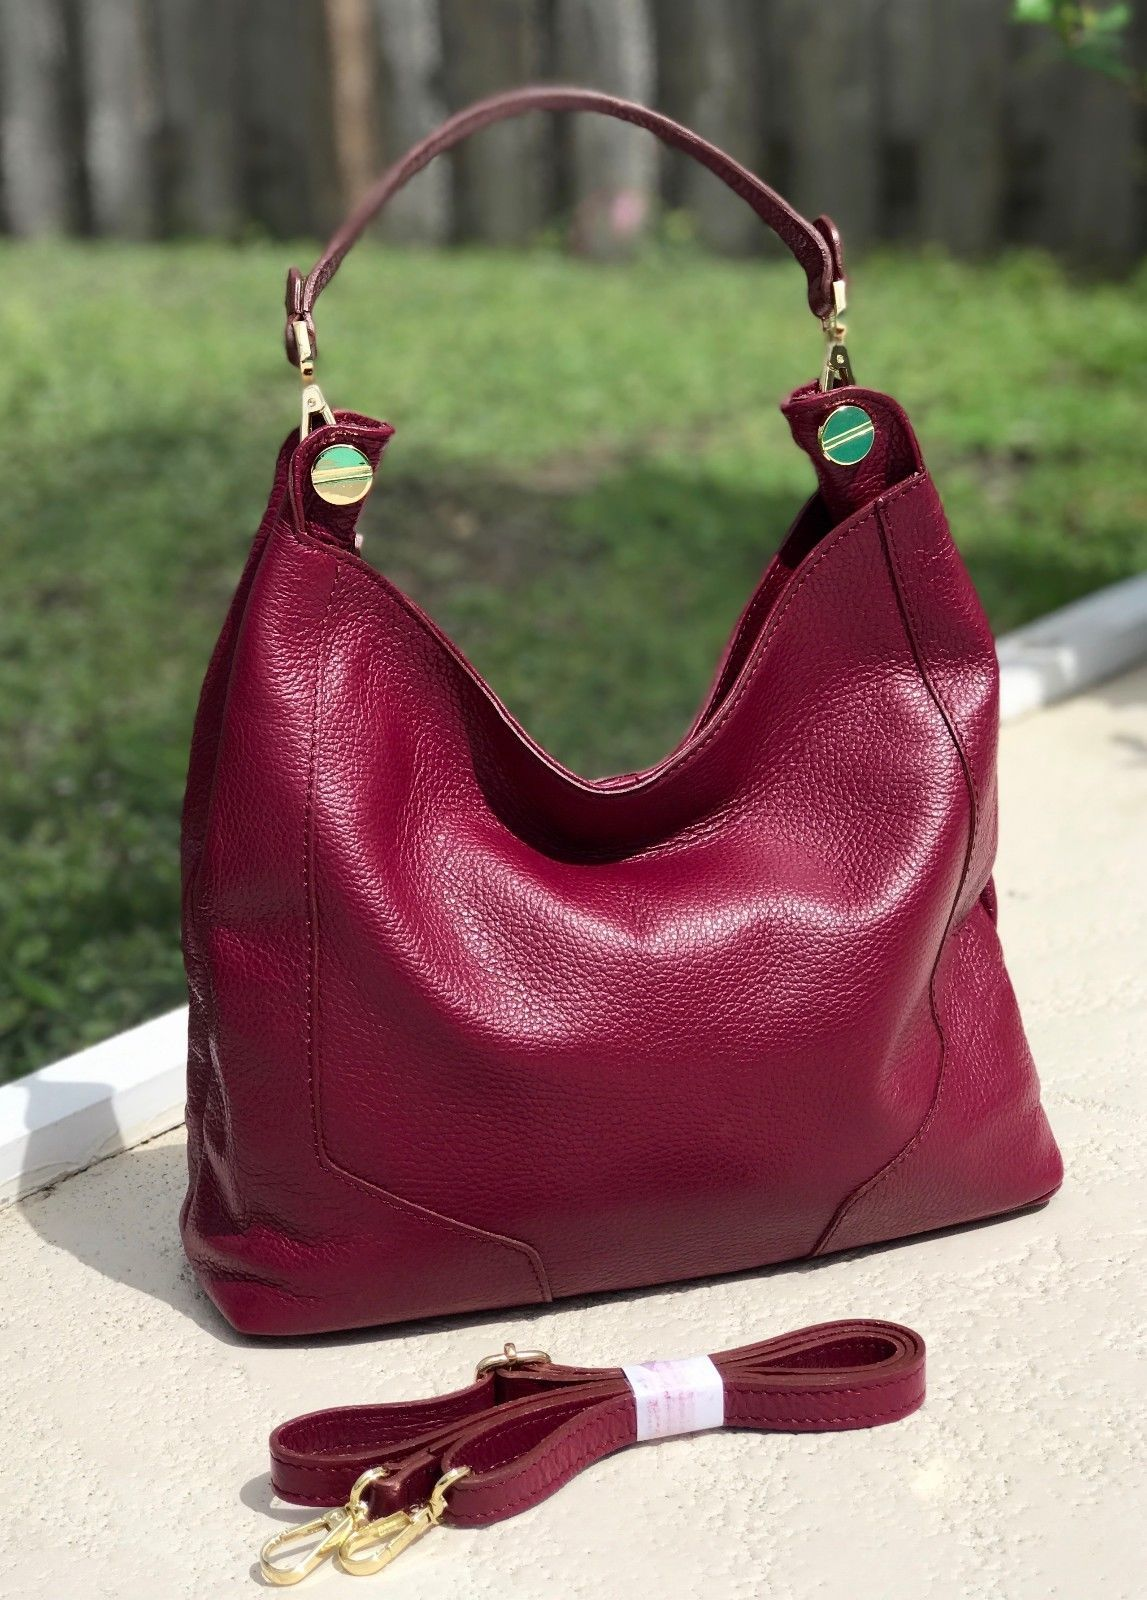 New Burgundy Red  Made in Italy Pebbled Leather Hobo Handbag Shoulder Bag Purse